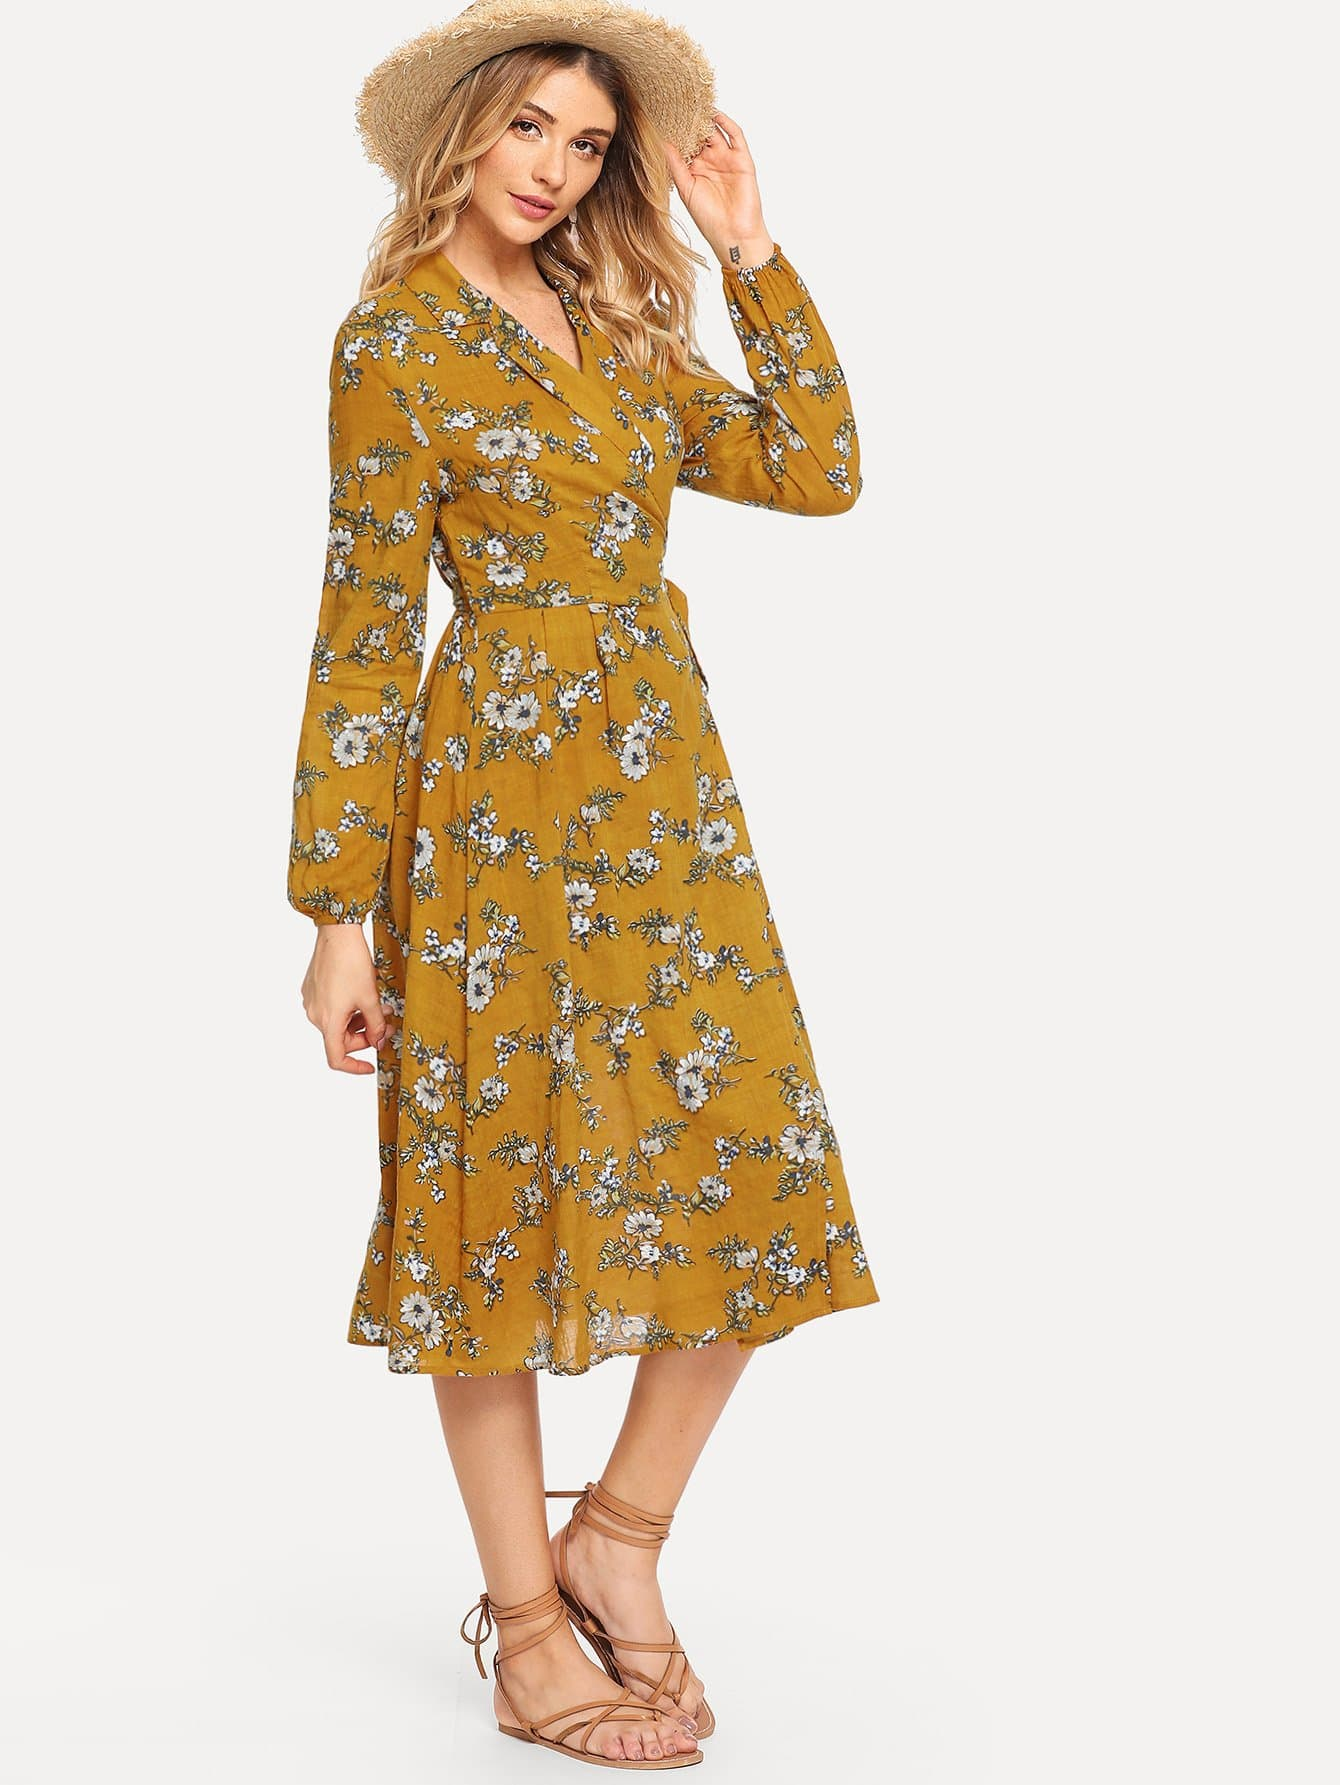 Daisy Print Surplice Wrap Dress, Nathane, SheIn  - купить со скидкой